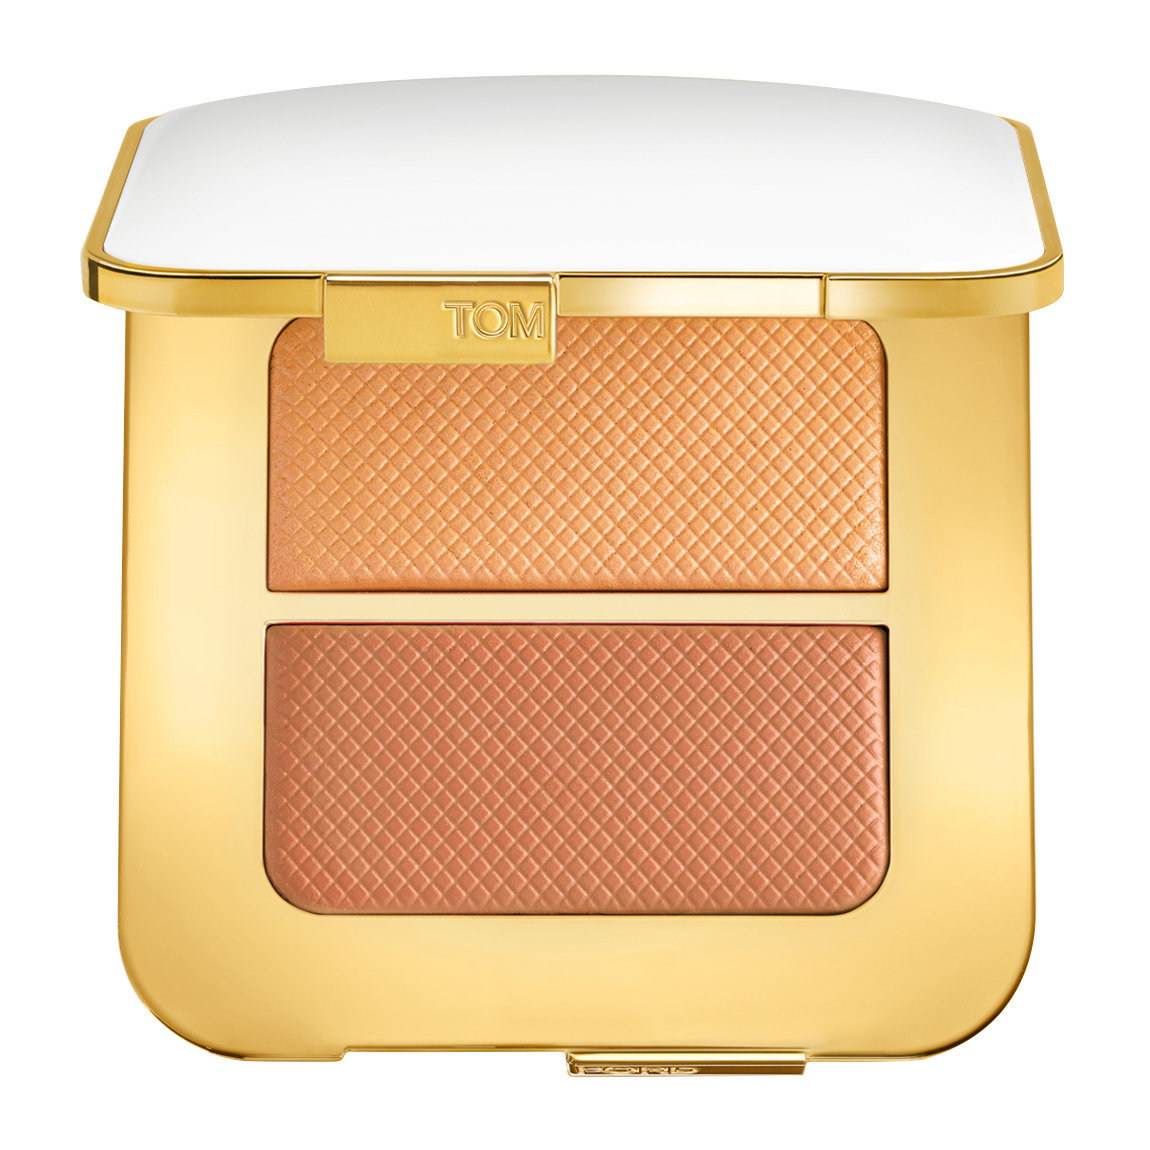 TOM FORD Sheer Highlighting Duo alternative view 1 - product swatch.